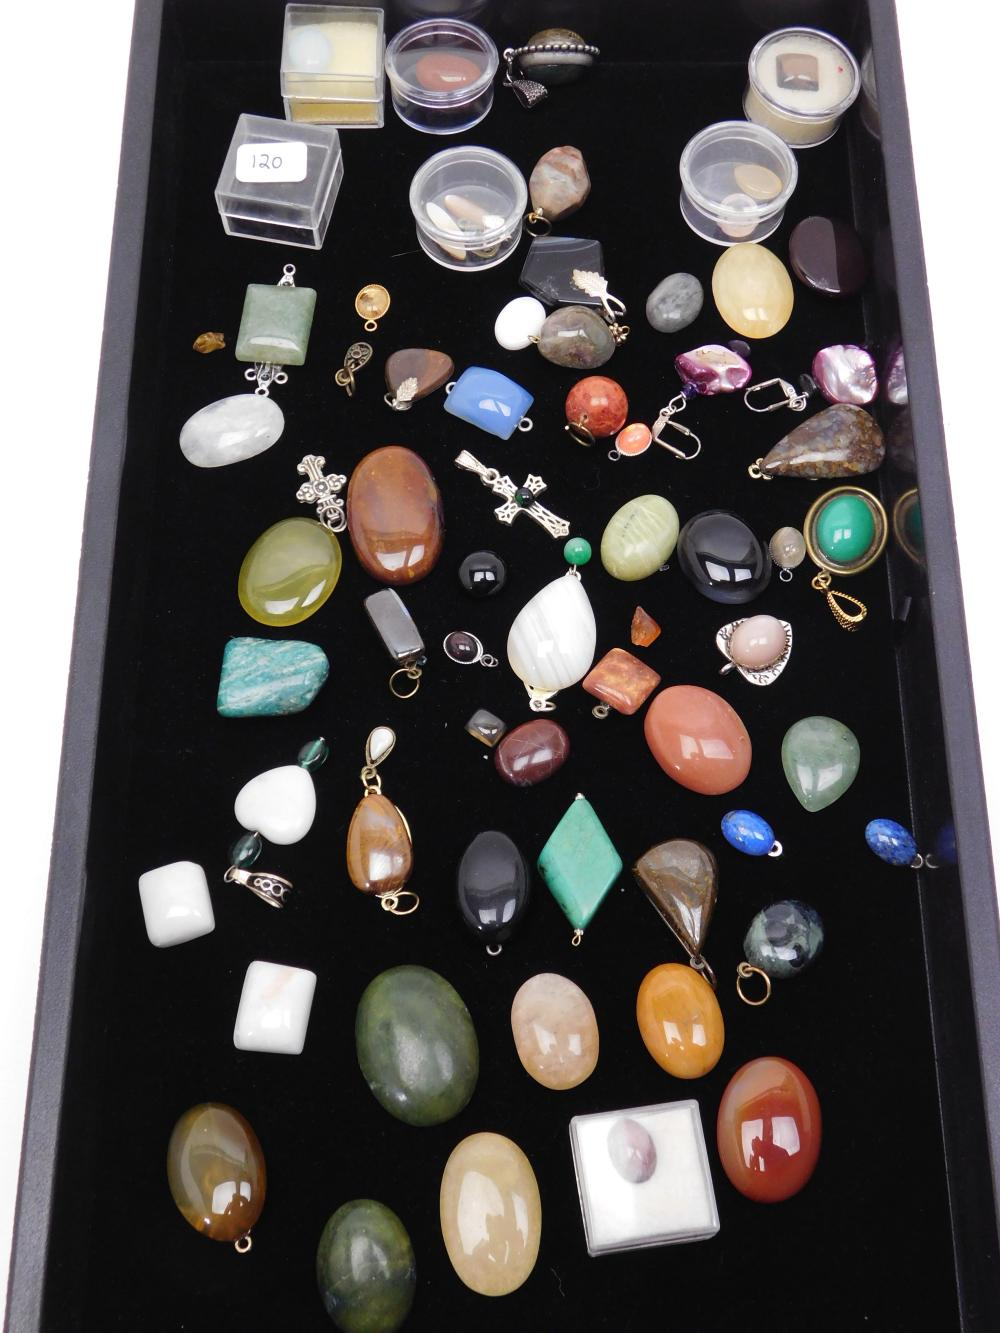 Large Mixed Lot Of Semiprecious Stone Cabachons And Pendants For Jewelry Making